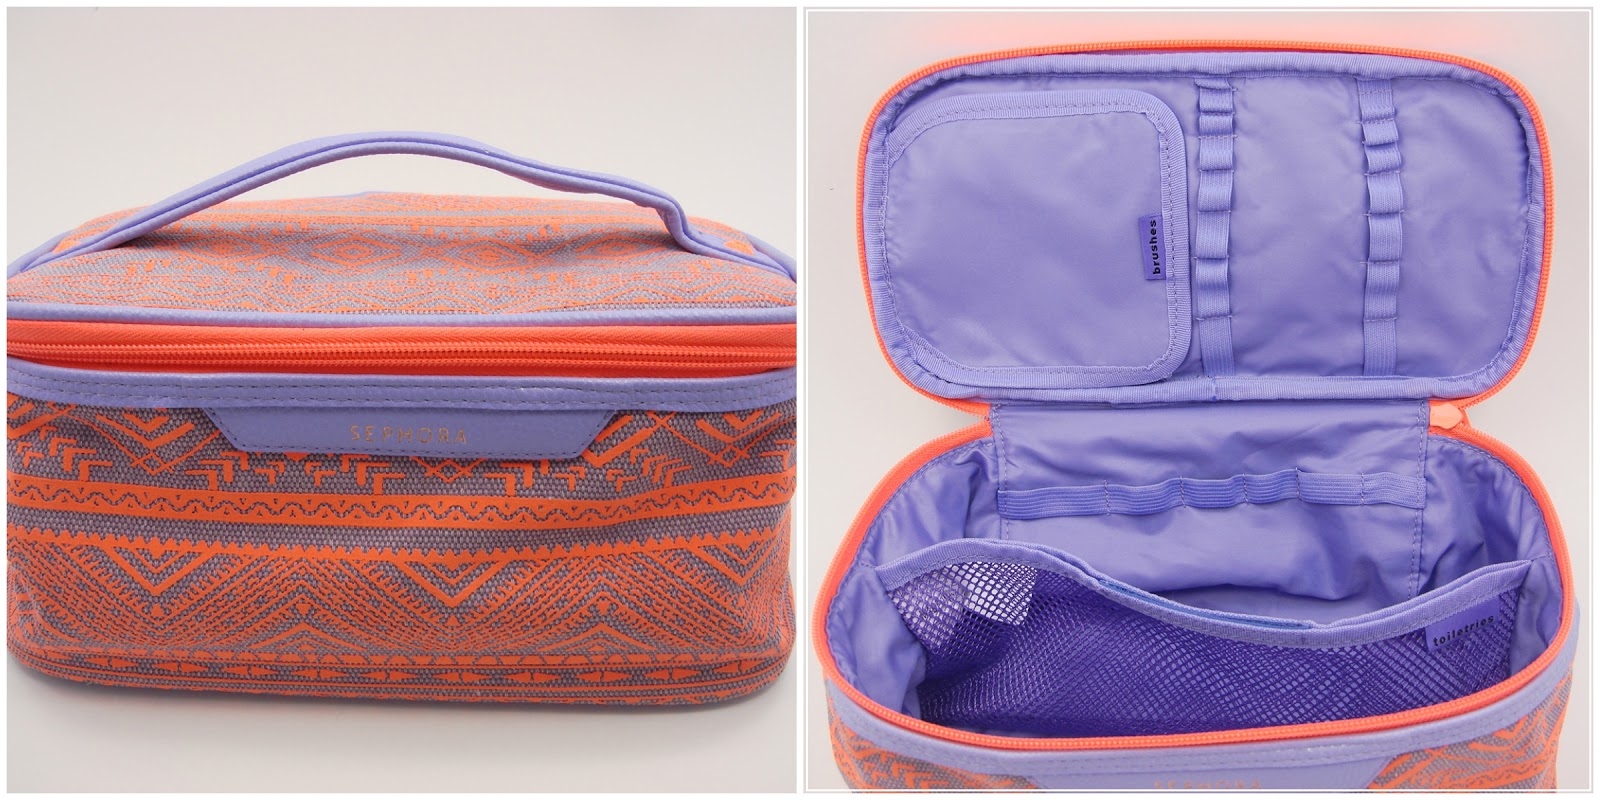 sephora makeup bag the vacationer. sephora collection - the vacationer in lipstick jungle makeup bag